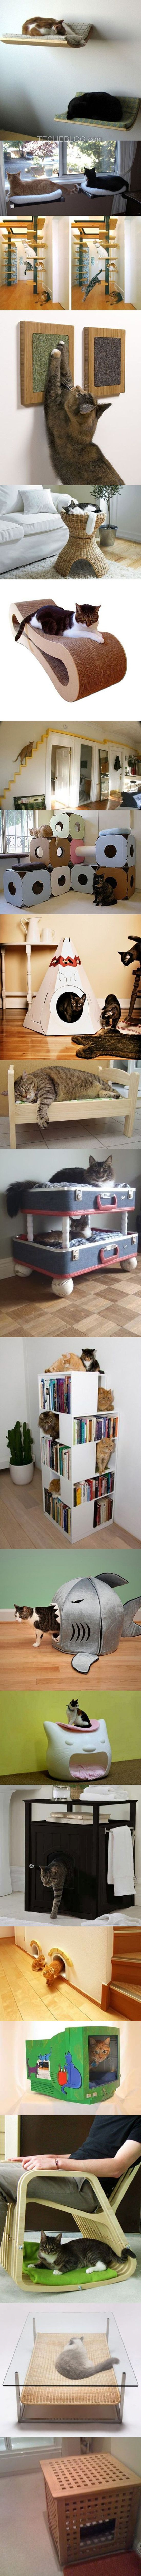 I need to get my cats some awesomeness for them! They totally deserve it!